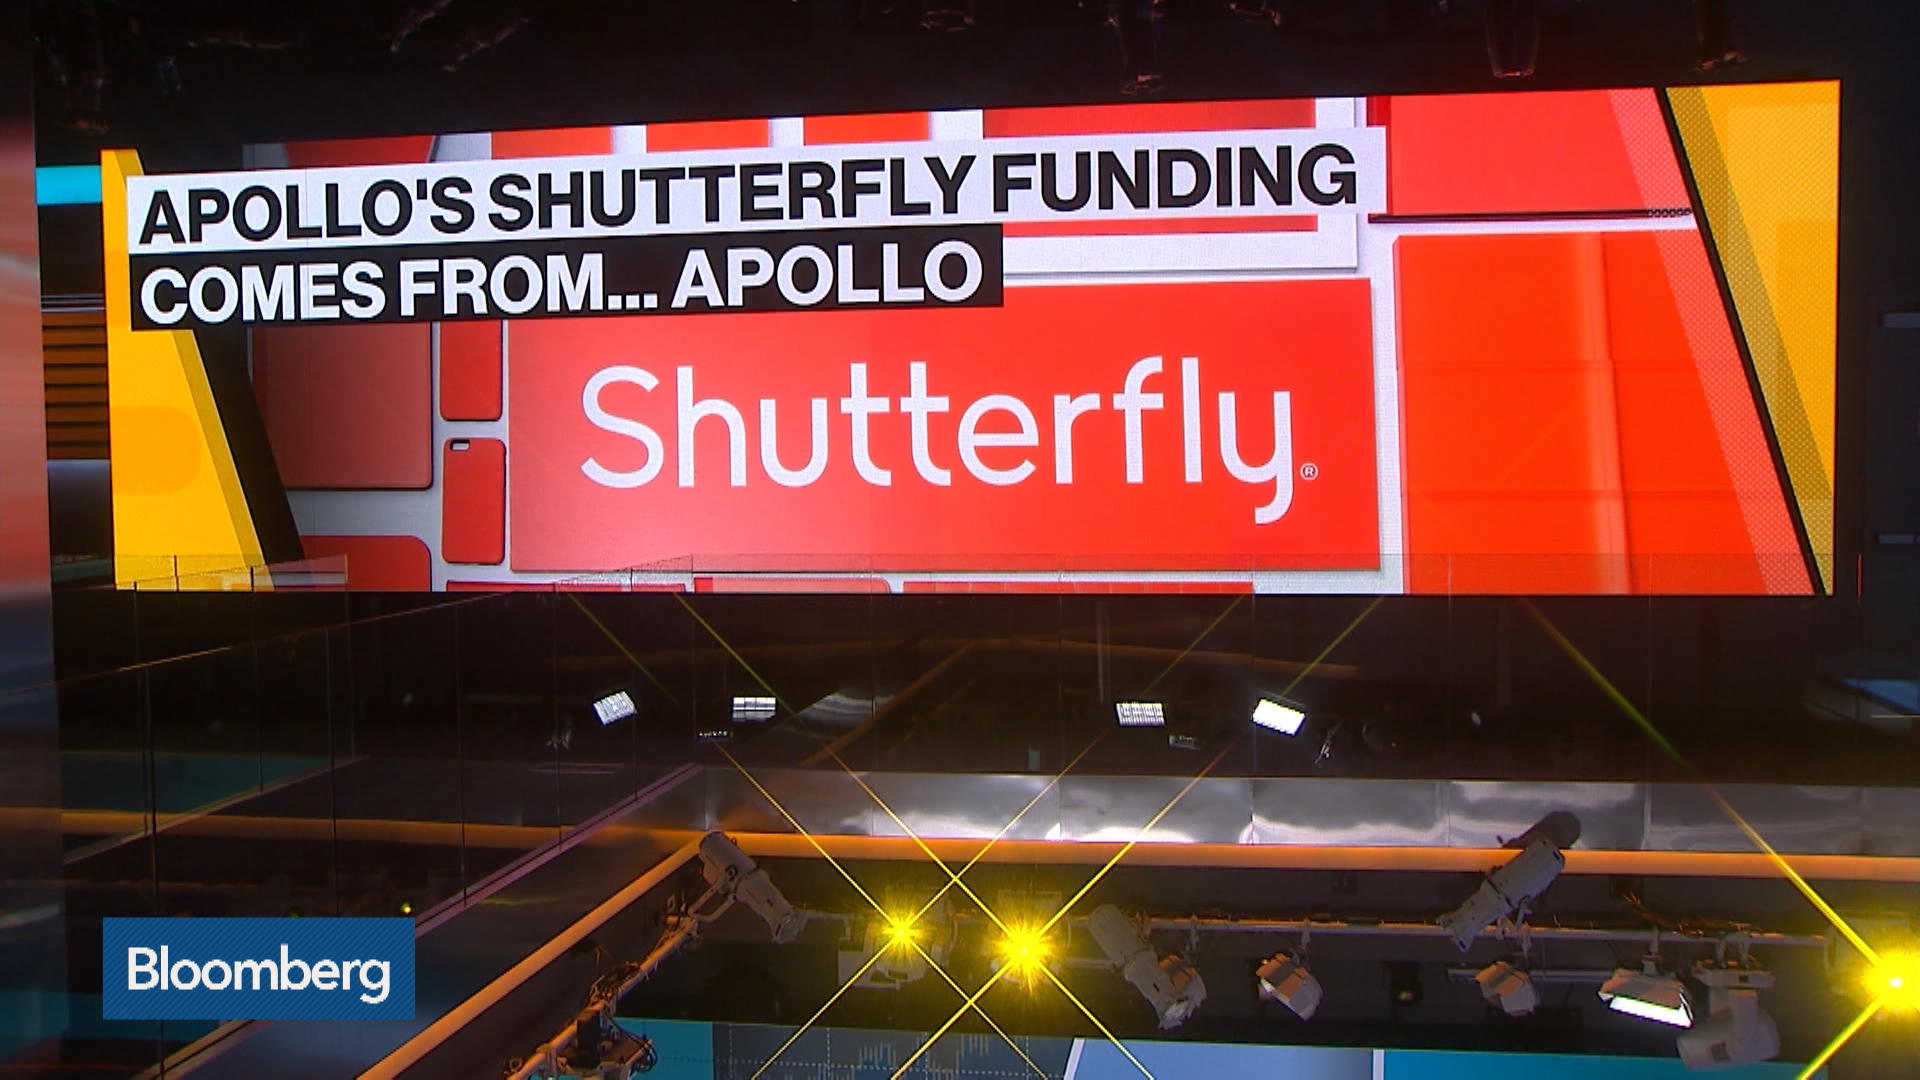 Apollo Global Management Buys $300 Million in Bonds for Own Shutterfly LBO